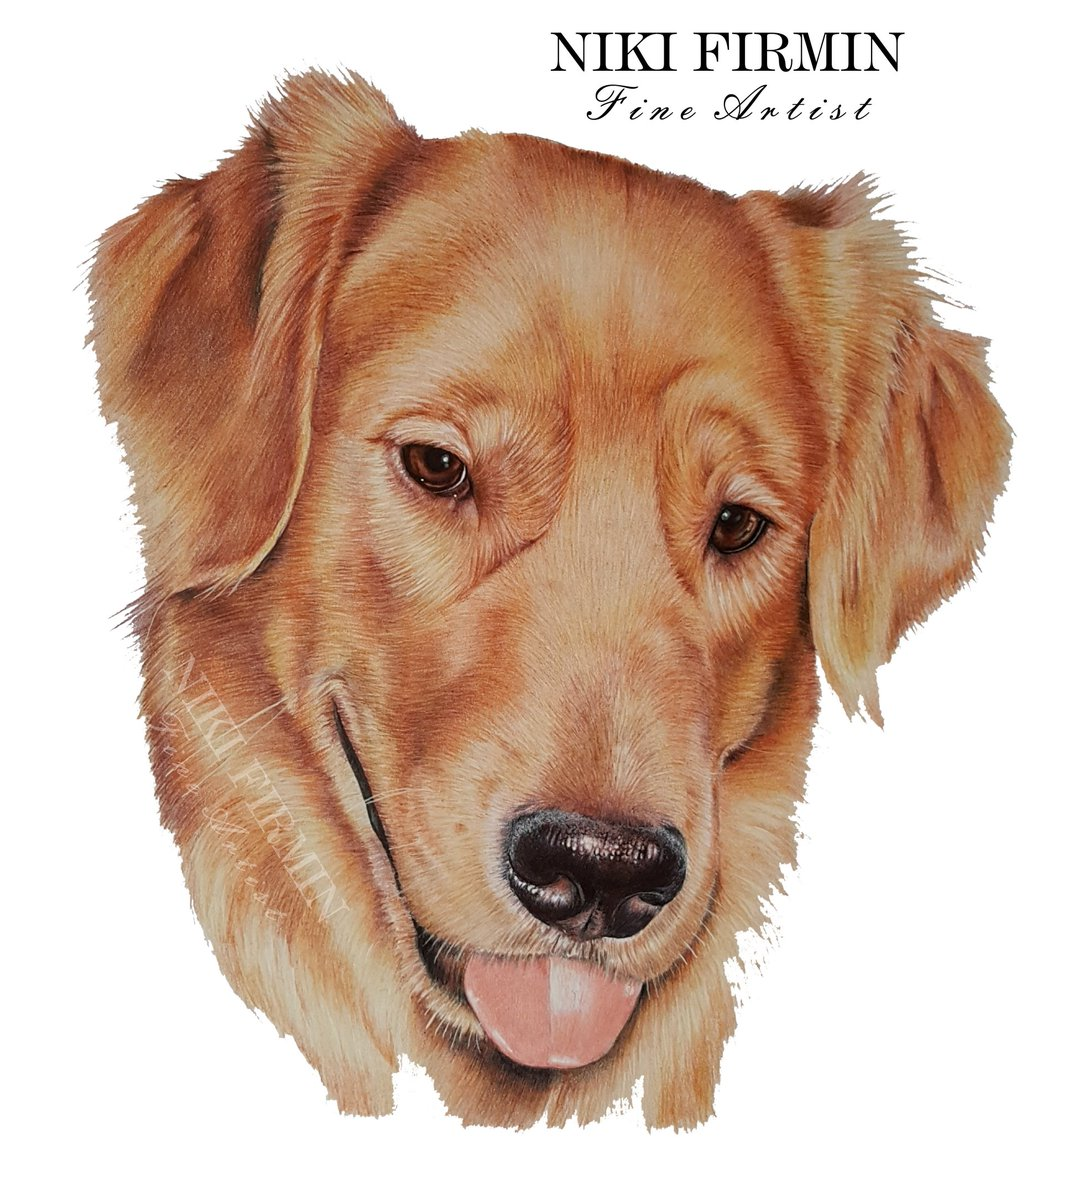 Thought I would carry on releasing every day one of the portraits I created last year. Today it's the gorgeous Jett x #labradorRetriever #petportraits #artist #commission #art #dogs #memories #portraits #fabercastell #colouredpencils #commissionsopenpic.twitter.com/ofPL219fbD